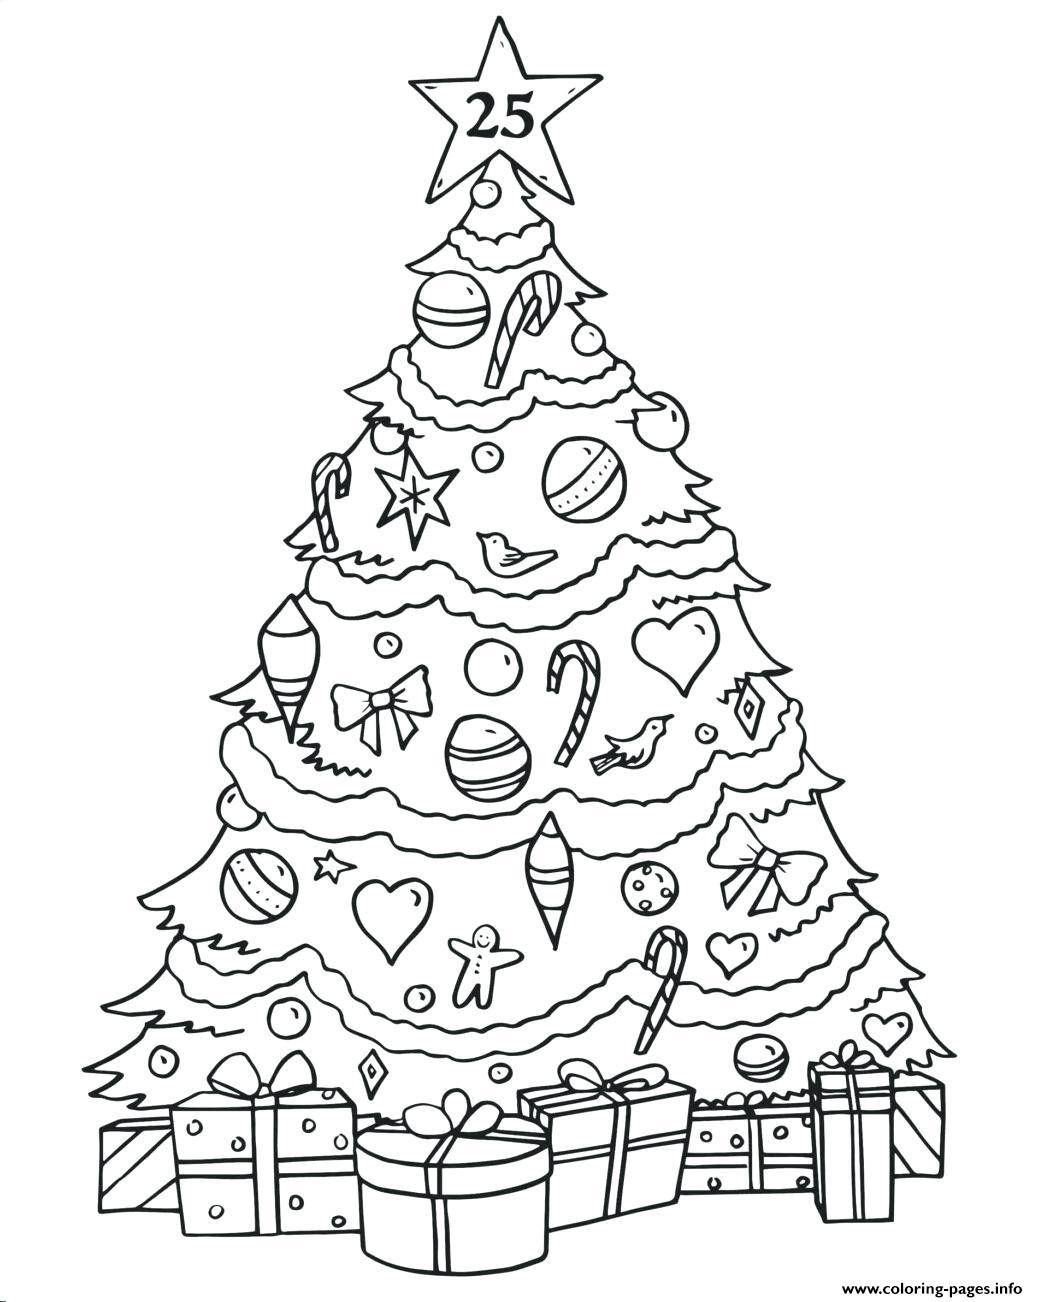 Phenomenal Christmas Tree Gifts Coloring Pages Printable